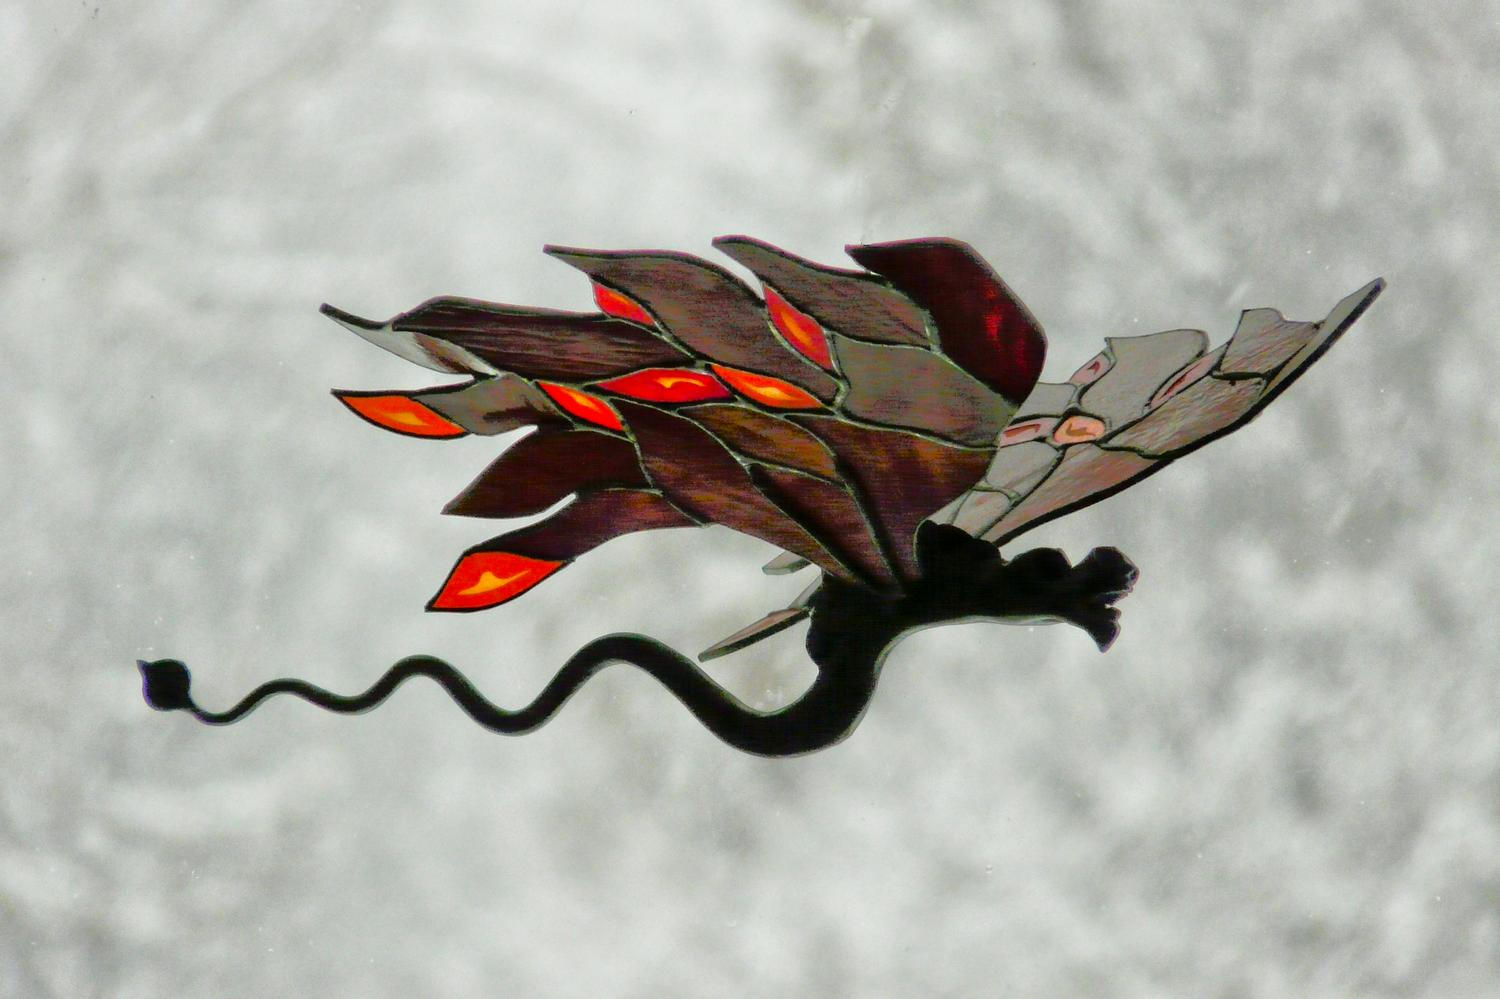 stained glass and wrought iron dragon in front of snow - Snads the dragon-  Panasonic DMC-FZ18 - SNADS the dragon flies before the storm. - Tony Karp, design, art, photography, techno-impressionist, techno-impressionism, aerial photography , drone , drones , dji , mavic pro , video , 3D printing - Books -